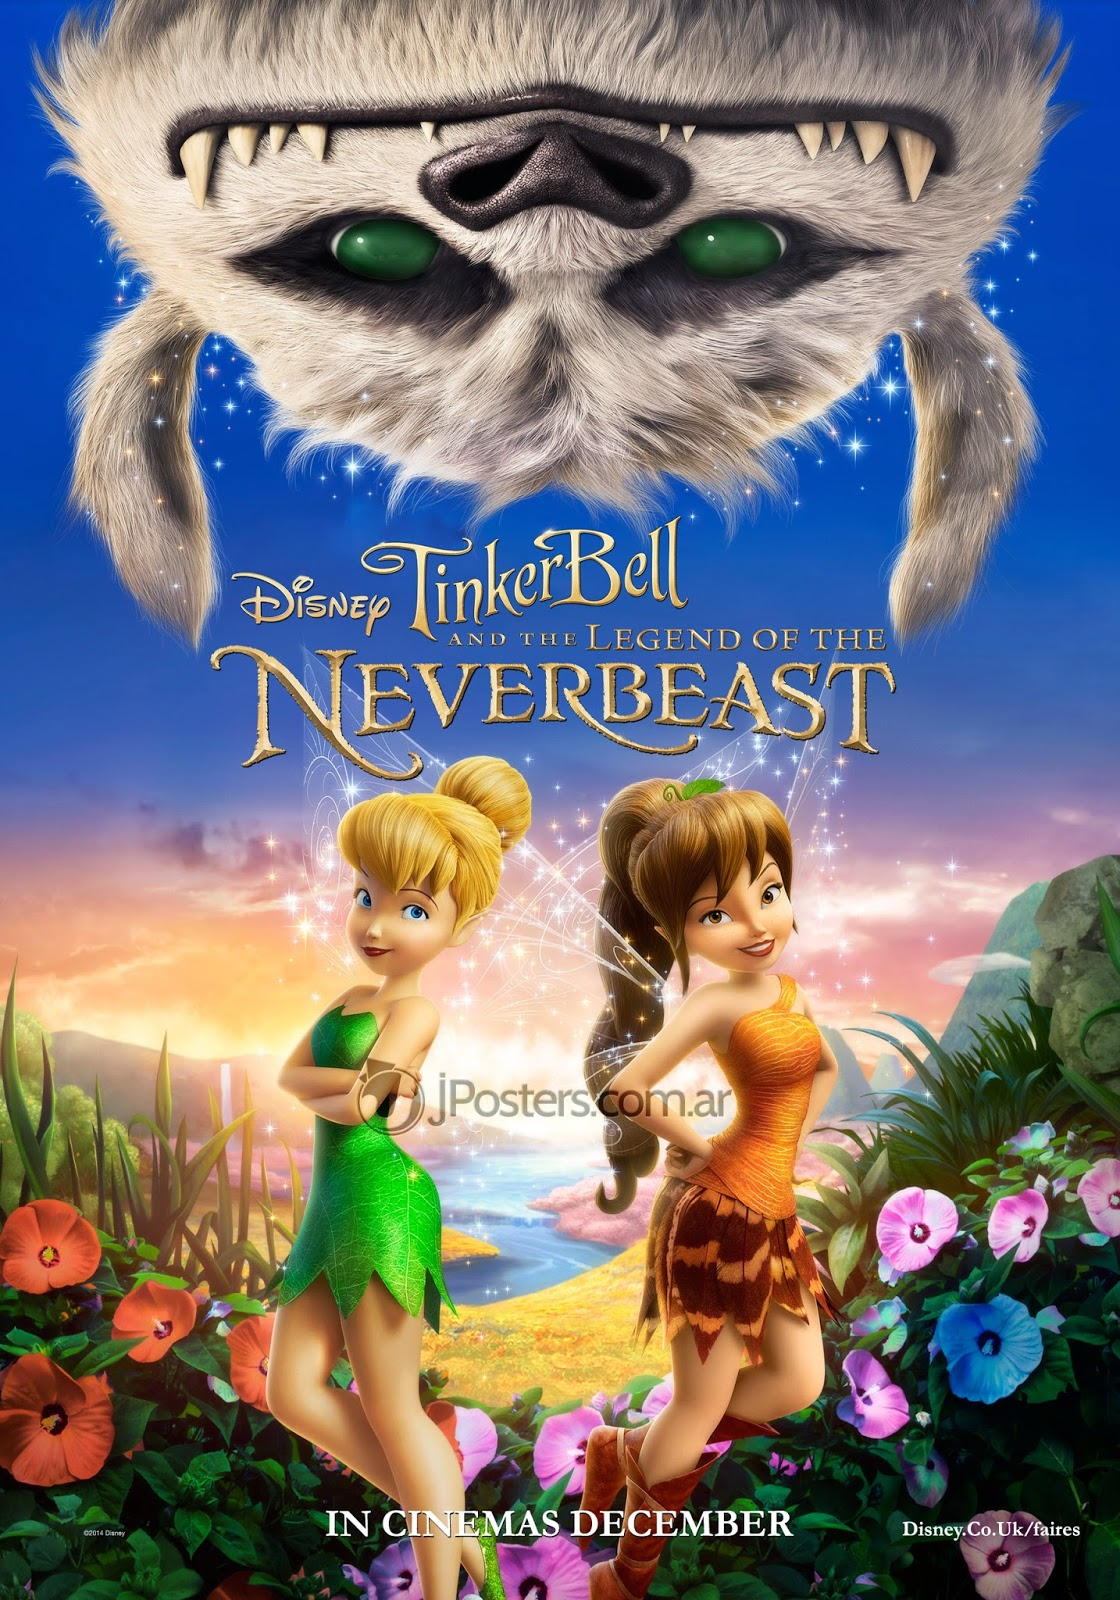 Tinker Bell and the Legend of the NeverBeast 2014, خلاصه داستان Tinker Bell and the Legend of the NeverBeast 2014, دانلود رایگان فیلم Tinker Bell and the Legend of the NeverBeast 2014, دانلود رایگان فیلم Tinker Bell and the Legend of the NeverBeast 2014 بدونه vip, دانلود زیرنویس فیلم Tinker Bell and the Legend of the NeverBeast 2014, دانلود فیلم Tinker Bell and the Legend of the NeverBeast 2014 با لینک مستقیم, دانلود فیلم Tinker Bell and the Legend of the NeverBeast 2014 با کیفیت عالی بلوری 720, دانلود فیلم اکشن, دانلود فیلم تخیلی Tinker Bell and the Legend of the NeverBeast 2014, دانلود فیلم ترسناک Tinker Bell and the Legend of the NeverBeast 2014, دانلود فیلم جدید Tinker Bell and the Legend of the NeverBeast 2014, دانلود فیلم زیبای Tinker Bell and the Legend of the NeverBeast 2014, دانلود کیفیت بلوری Tinker Bell and the Legend of the NeverBeast 2014, دنلود فیلم اکشن Tinker Bell and the Legend of the NeverBeast 2014, زیرنویس فارسی Tinker Bell and the Legend of the NeverBeast 2014, کاور فیلم Tinker Bell and the Legend of the NeverBeast 2014